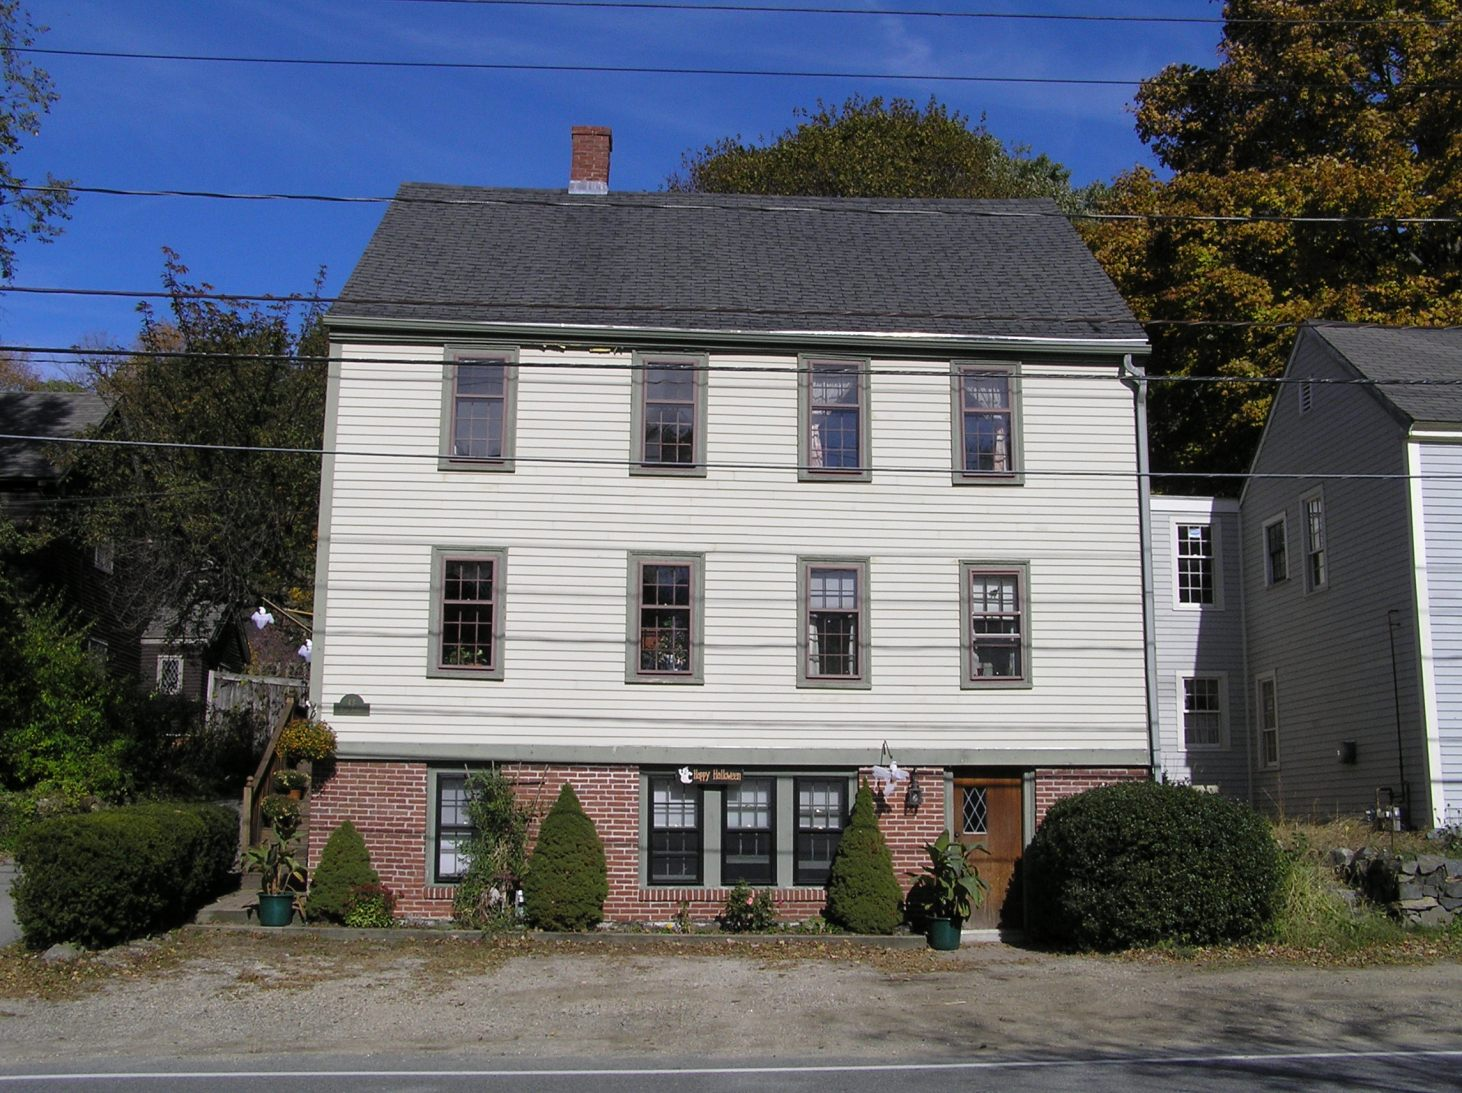 43 High Street, the Fitts- Manning-Tyler house (1767)